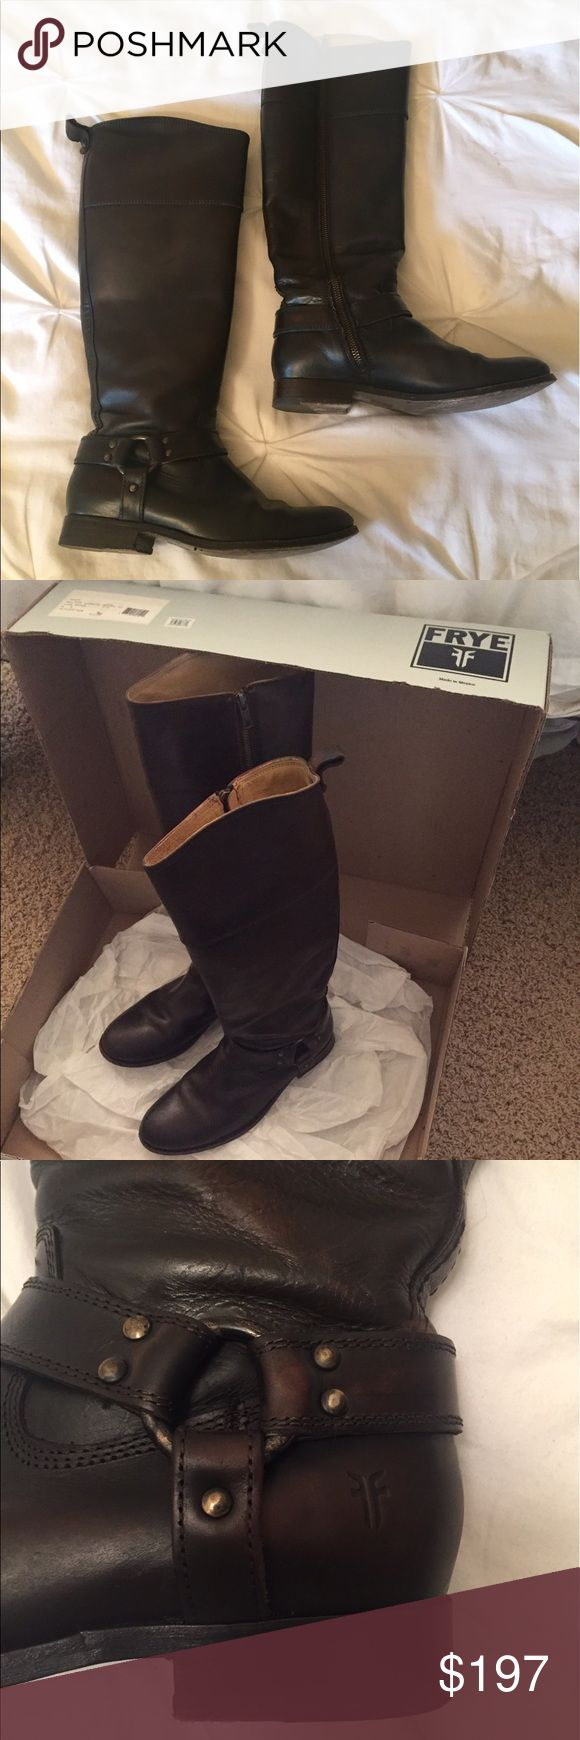 "Frye Melissa Harness Boots Like new frye boots! Vintage dark brown leather. Very versatile - in the words of Monica Gellar 'they're very practical. You can wear them with dresses, with skirts, with pants..."" Frye Shoes Heeled Boots"